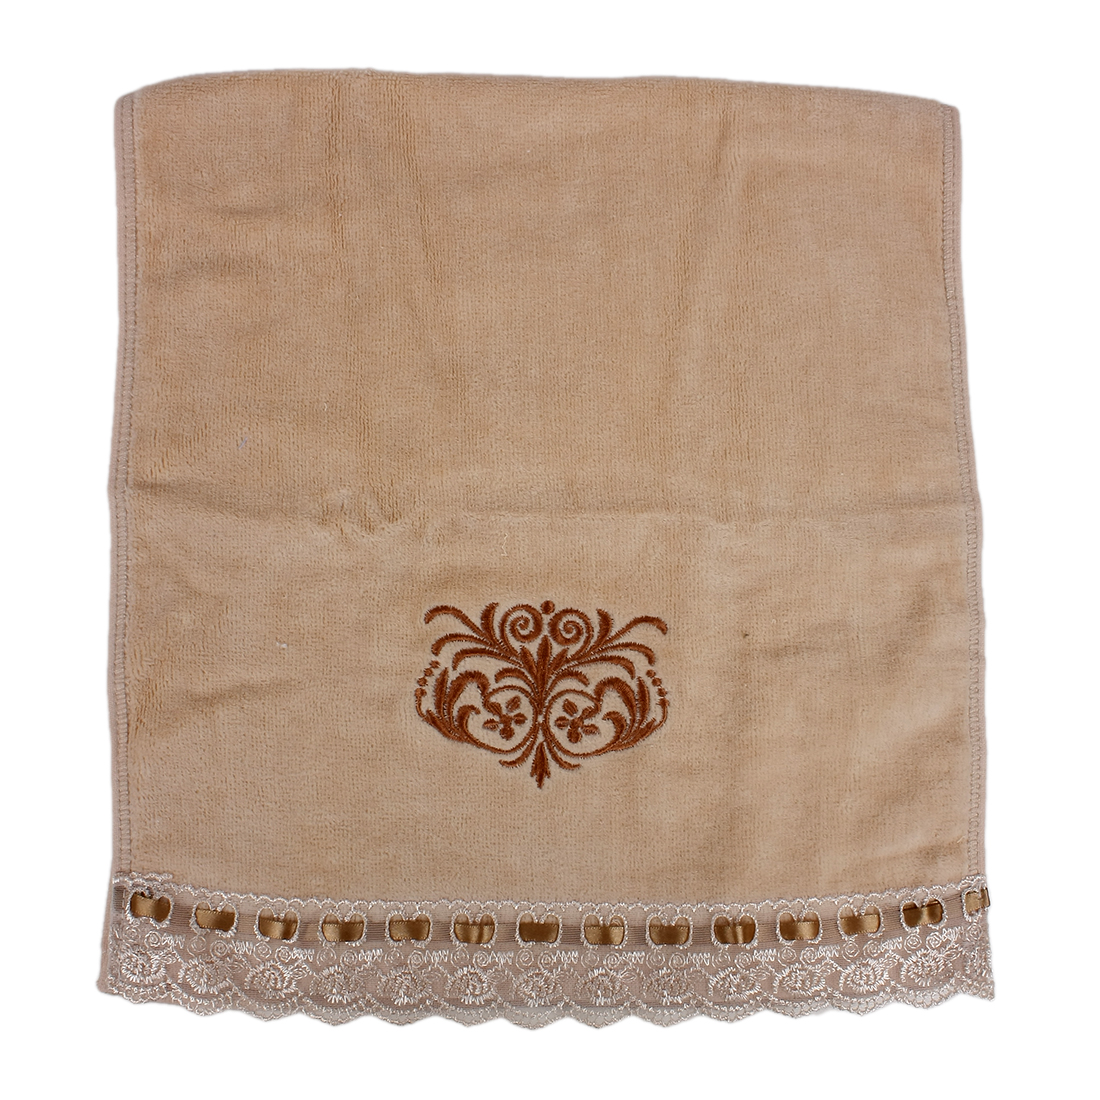 Embroidered Lace Facecloth Washcloth Hand Towel Beige